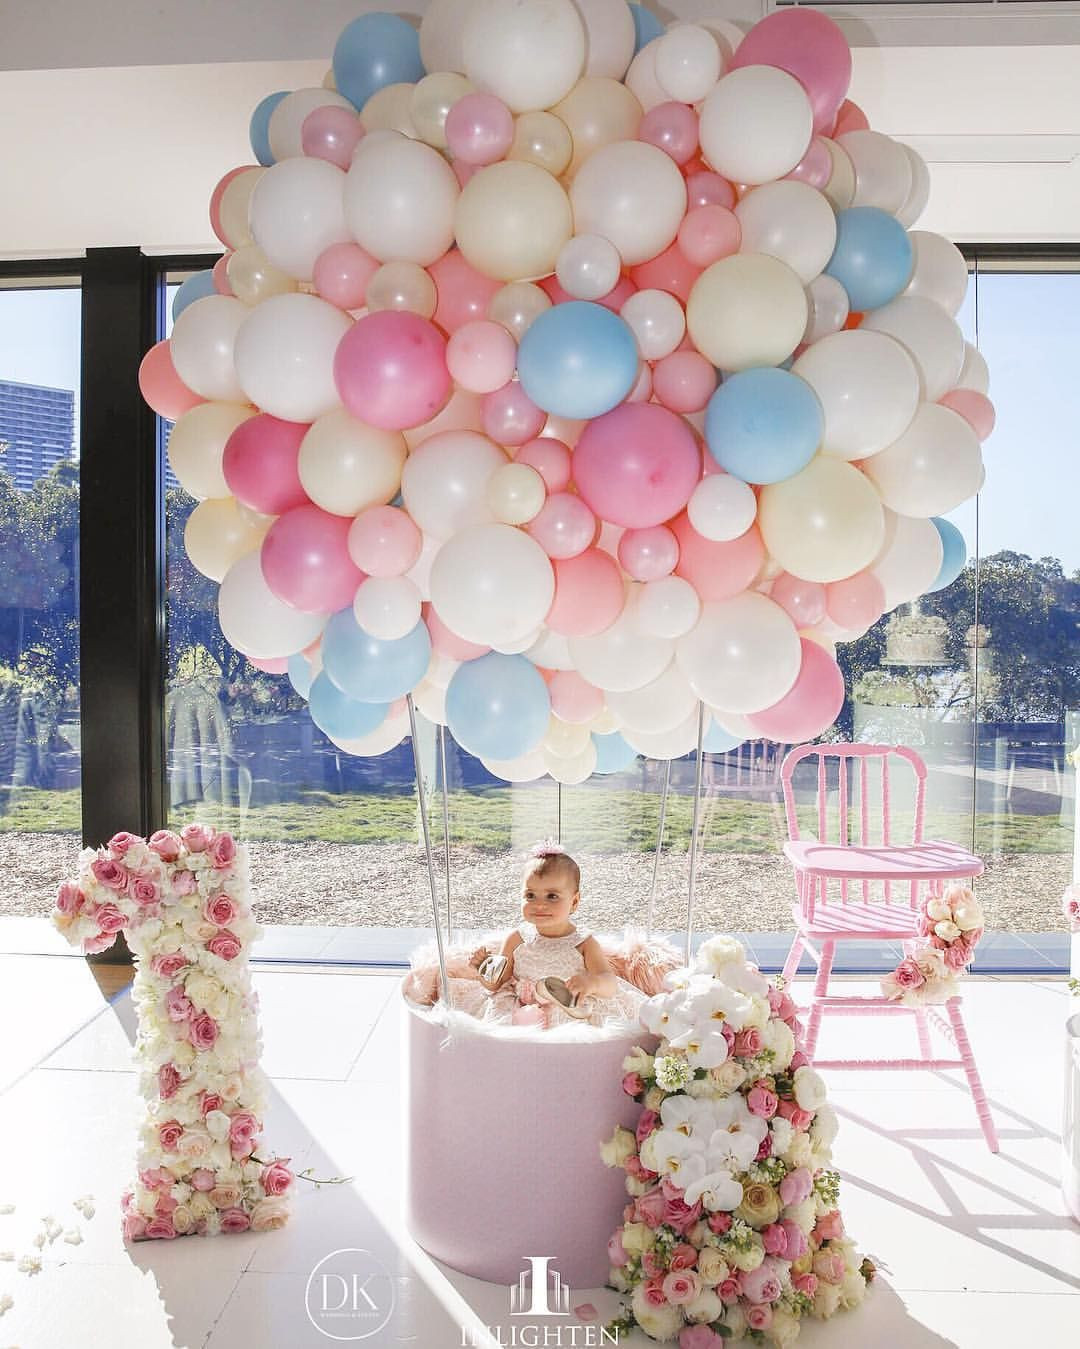 Best ideas about 1 Year Old Birthday Party Locations . Save or Pin Pin by Fahida on aurora Now.